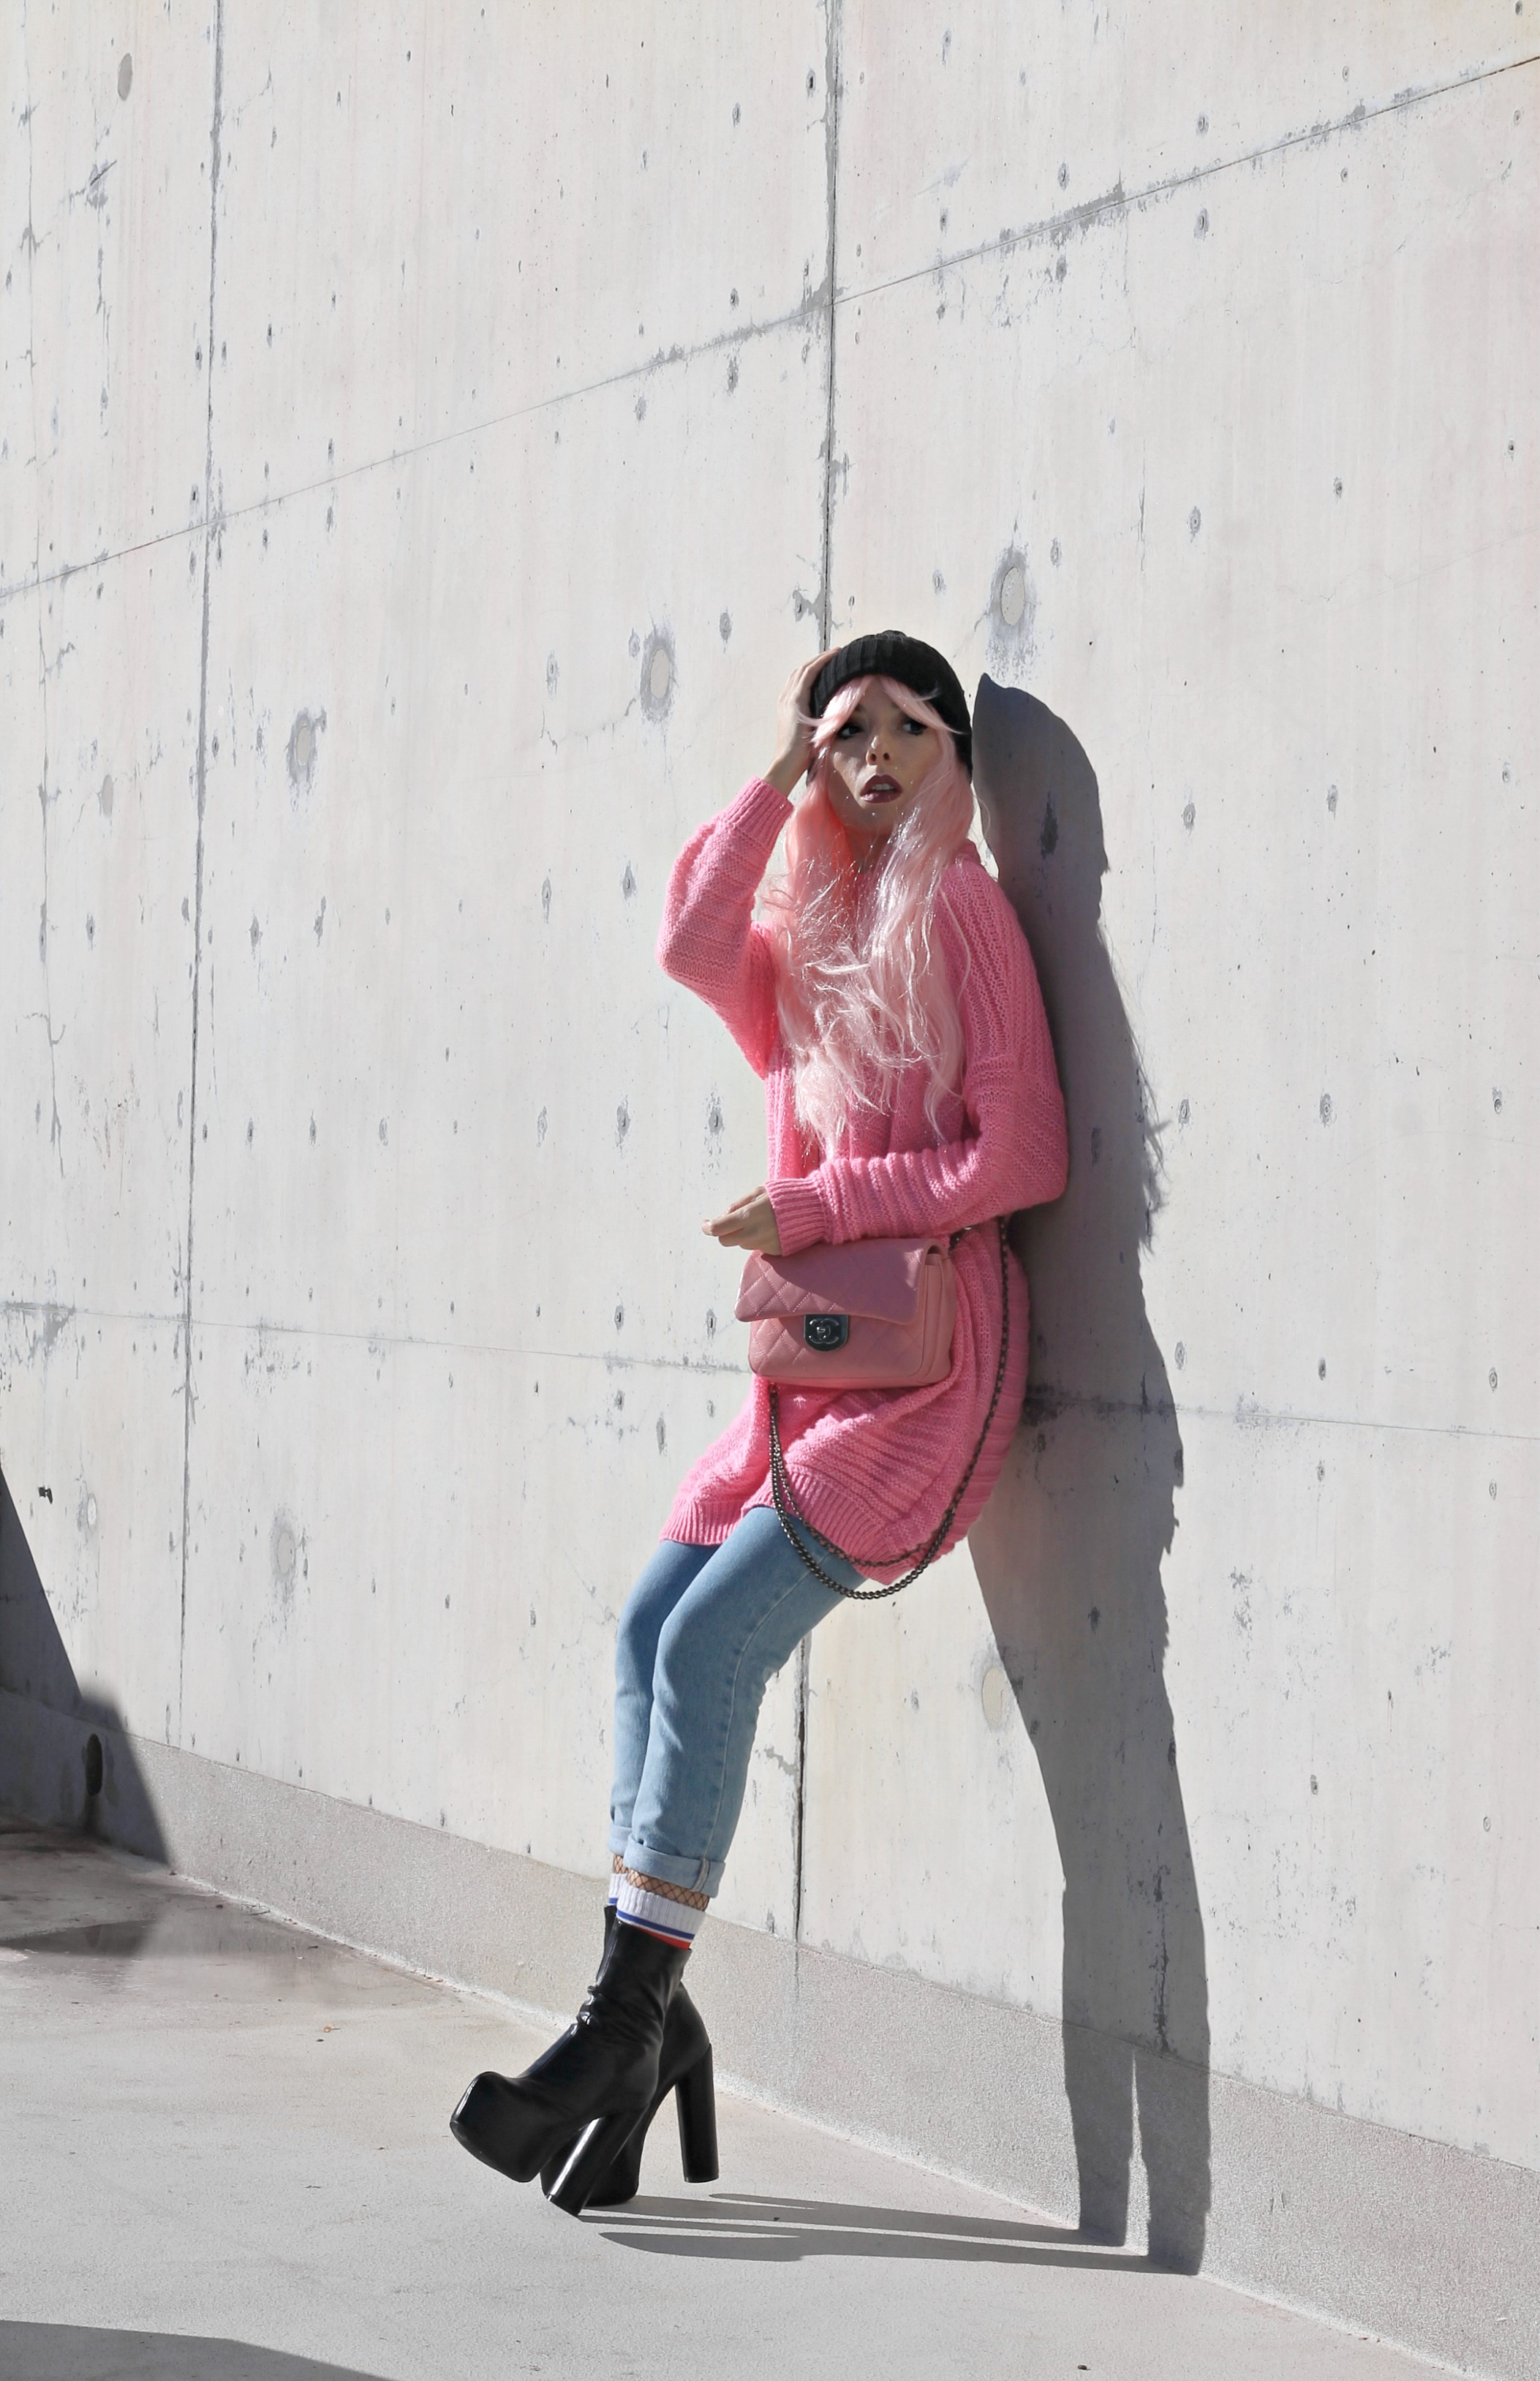 unicorni rosa, theladycracy.it, generazione y, elisa bellino, pink chanel bag, borsa chanel rosa, capelli rosa blogger, parrucche rosa, pink hair blogger, pink look 2017, blogger moda 2017, fashion blogger italia 2017, fashion blogger milano 2017, fashion blogger più seguite 2017, fashion blogger famose 2017, stivaletti plateau,